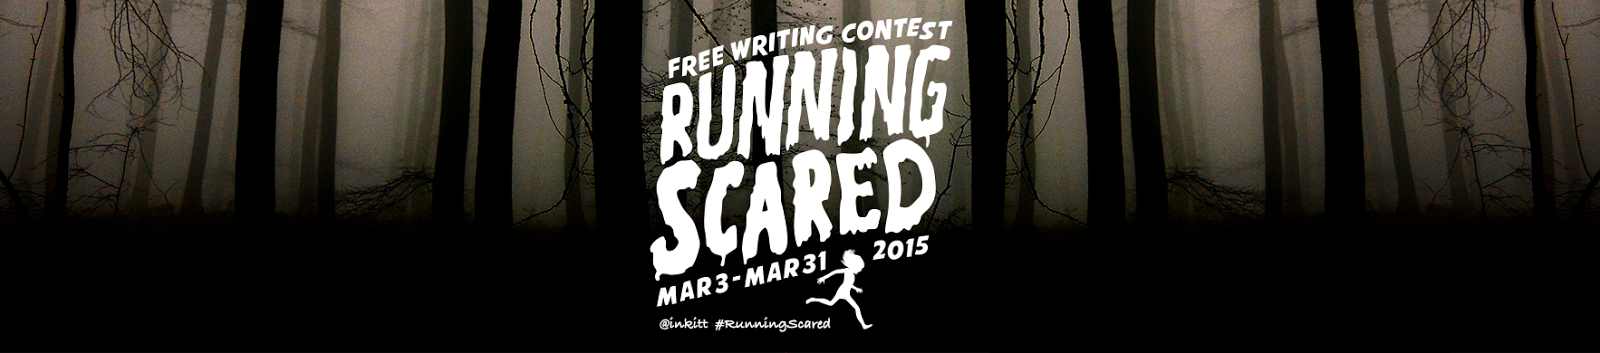 http://www.inkitt.com/runningscared